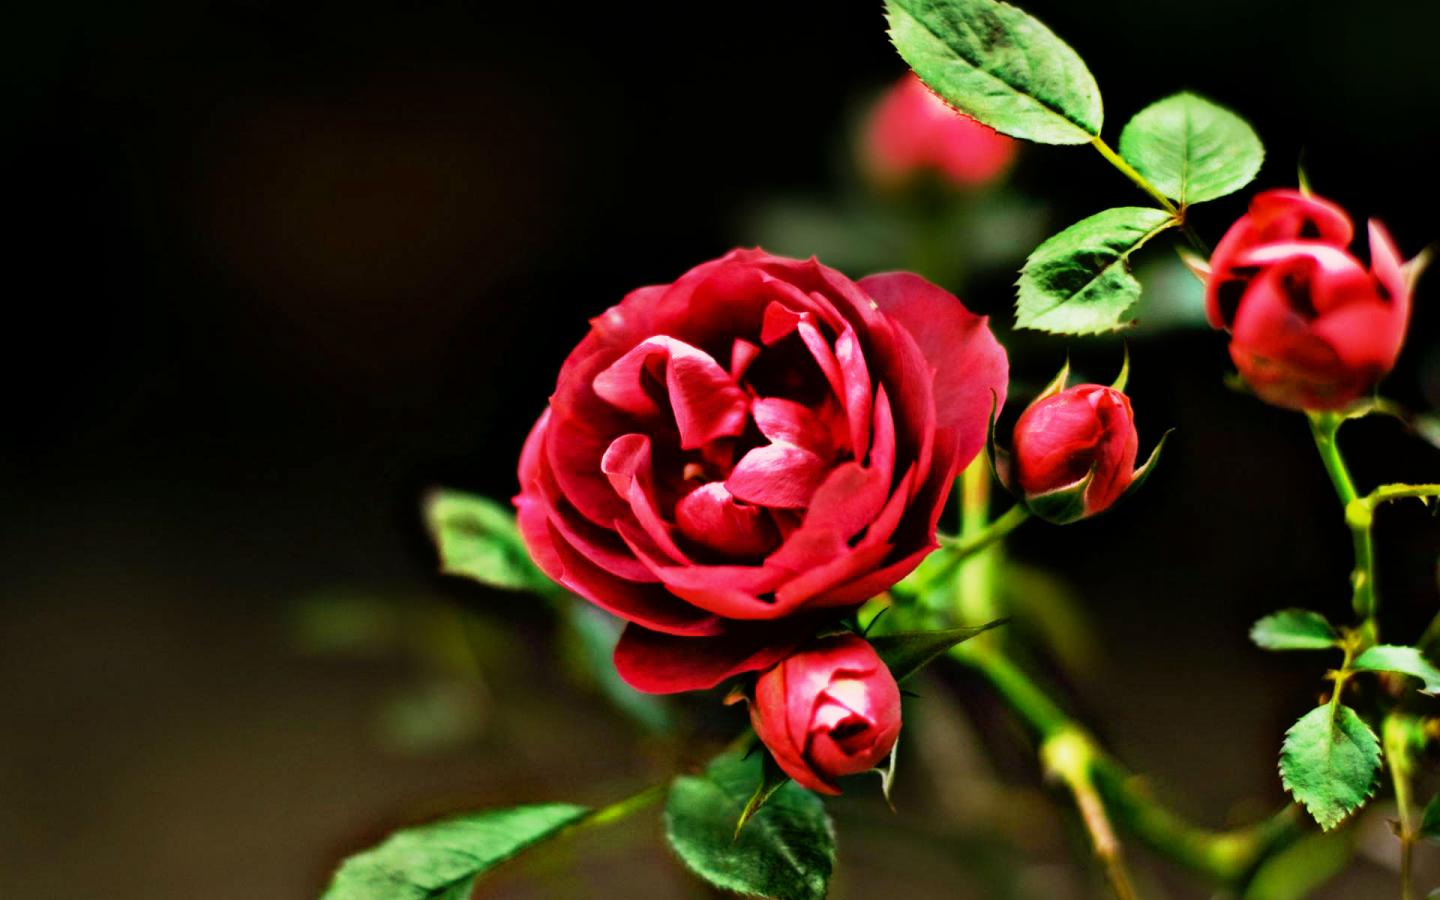 Red Flowers HD Nature Wallpaper With Rose Picture